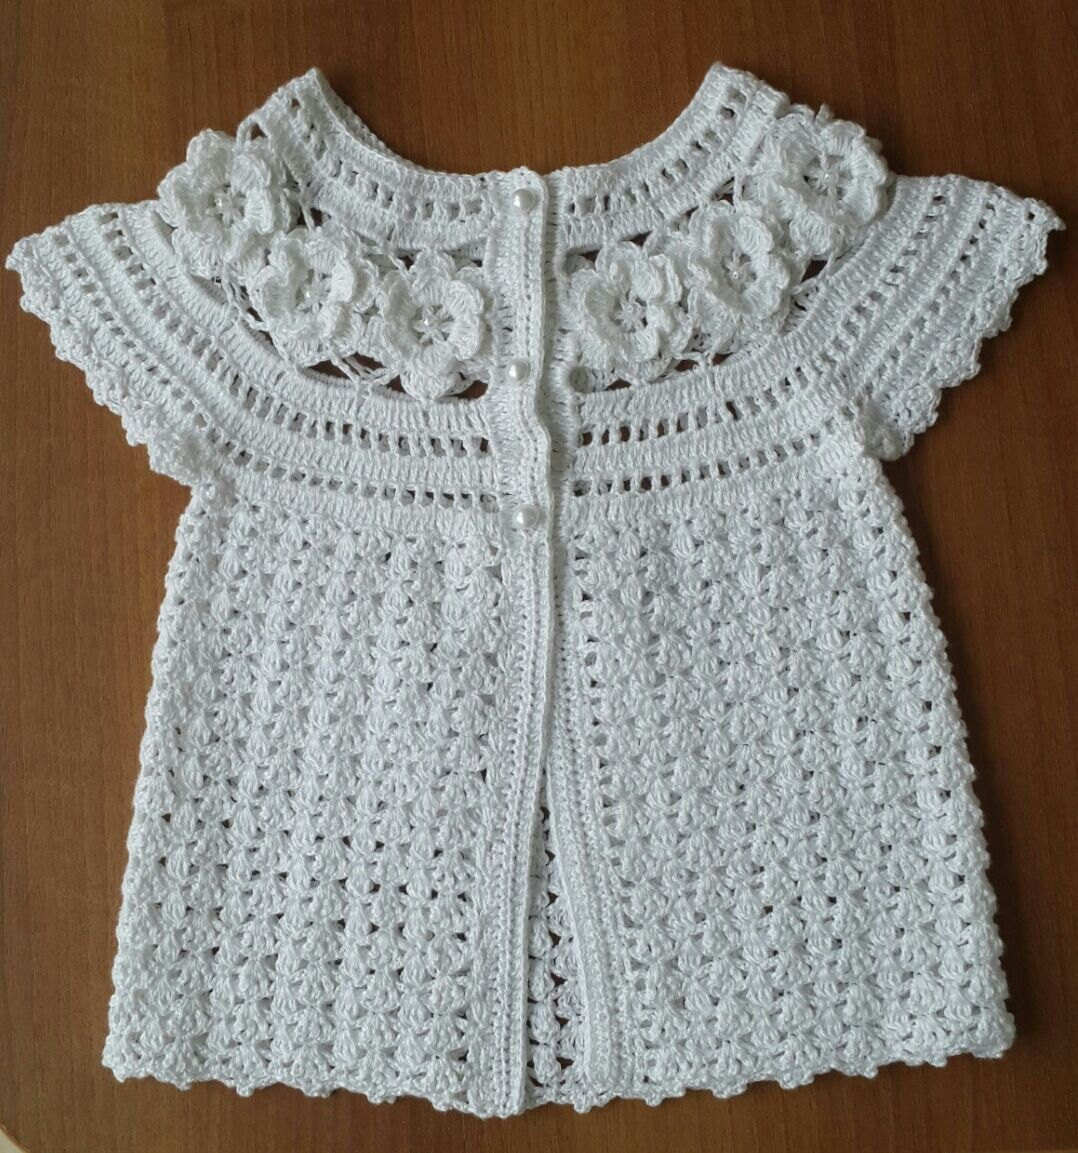 Knitted Baby Clothes Inspirational Knit Baby Dress Baby Dress Knitted Baby Dress Baby Dress Of Innovative 45 Images Knitted Baby Clothes